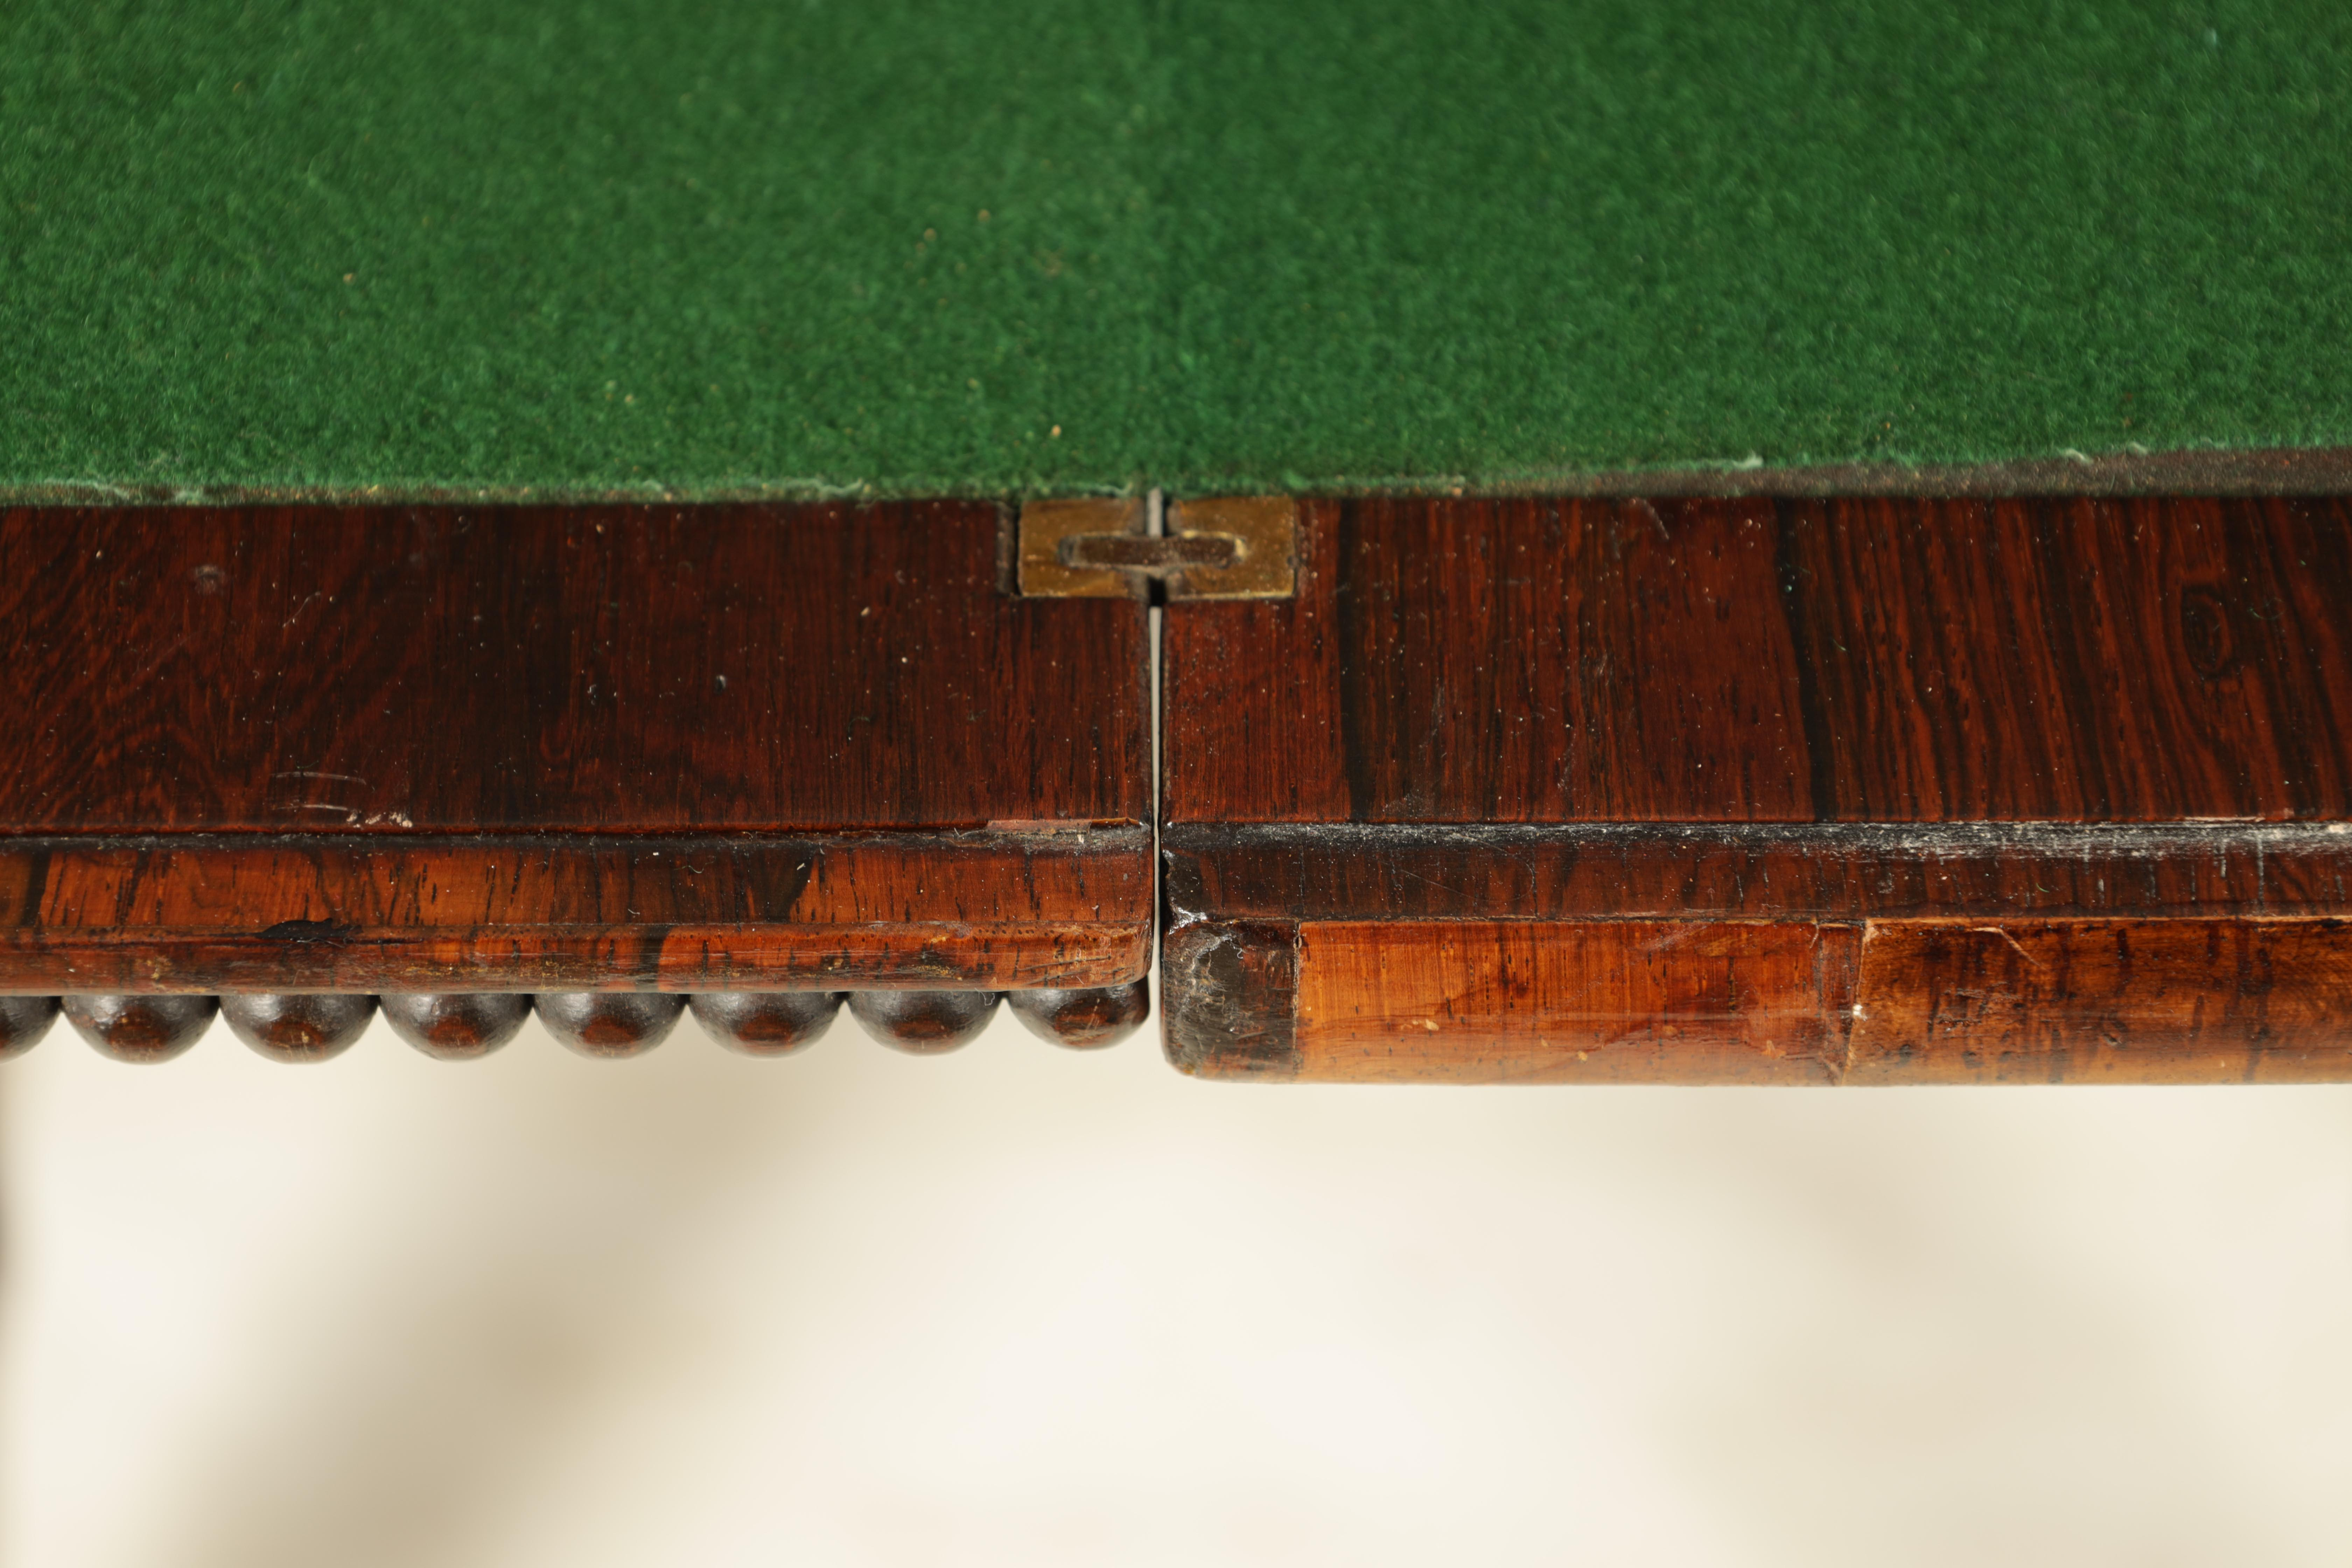 A REGENCY FIGURED ROSEWOOD CARD TABLE IN THE MANNER OF T & G SEDDON with revolving top revealing a - Image 4 of 9